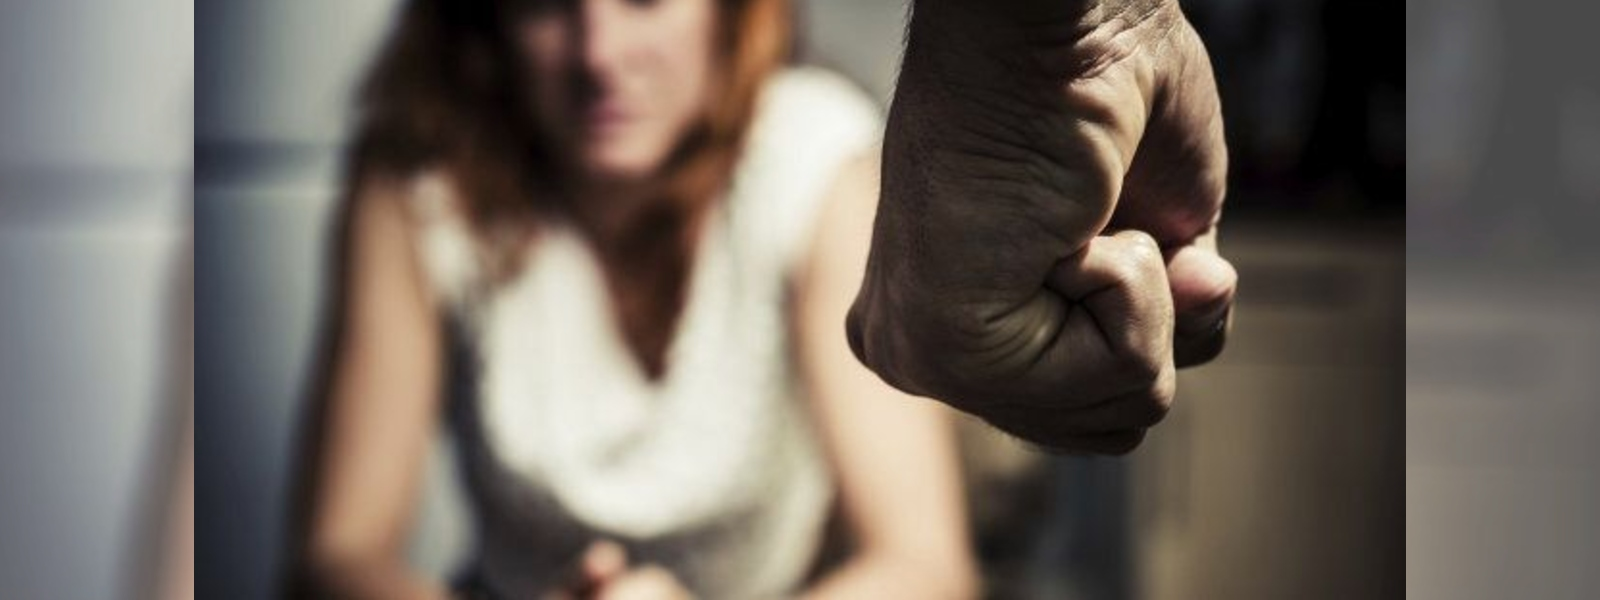 Rate of Violence against Women increases amidst COVID-19